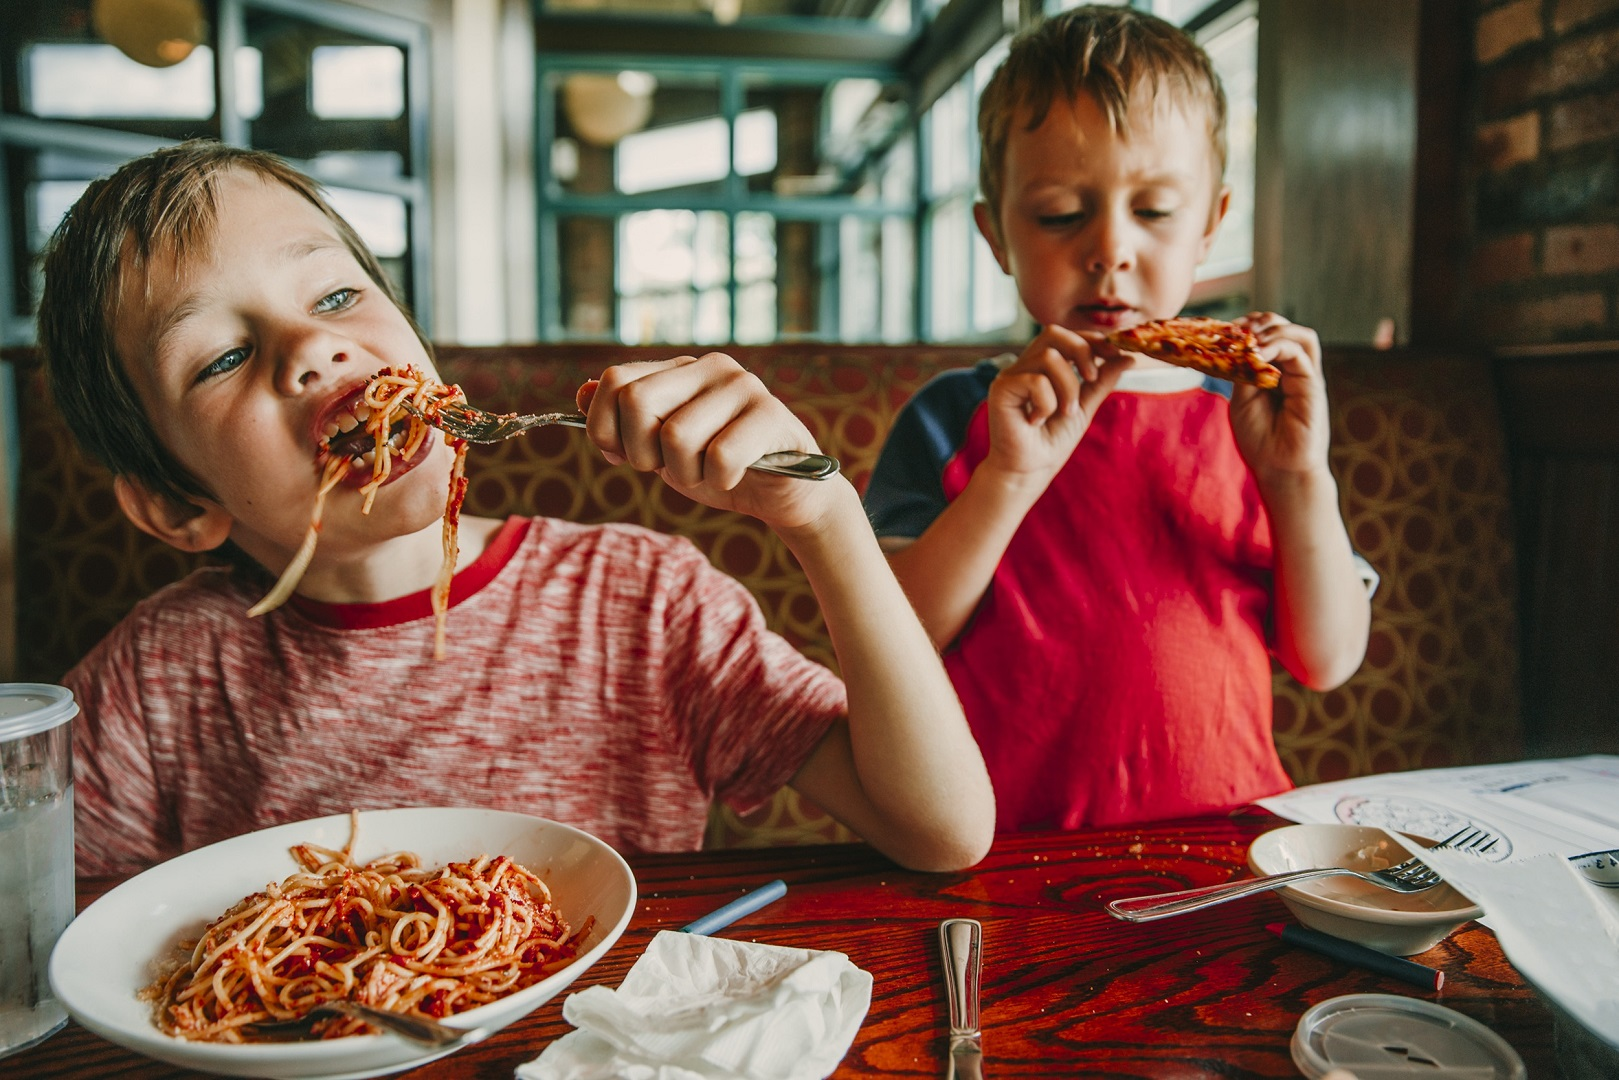 Don't Ban Children From Restaurants, Teach Them How to Act